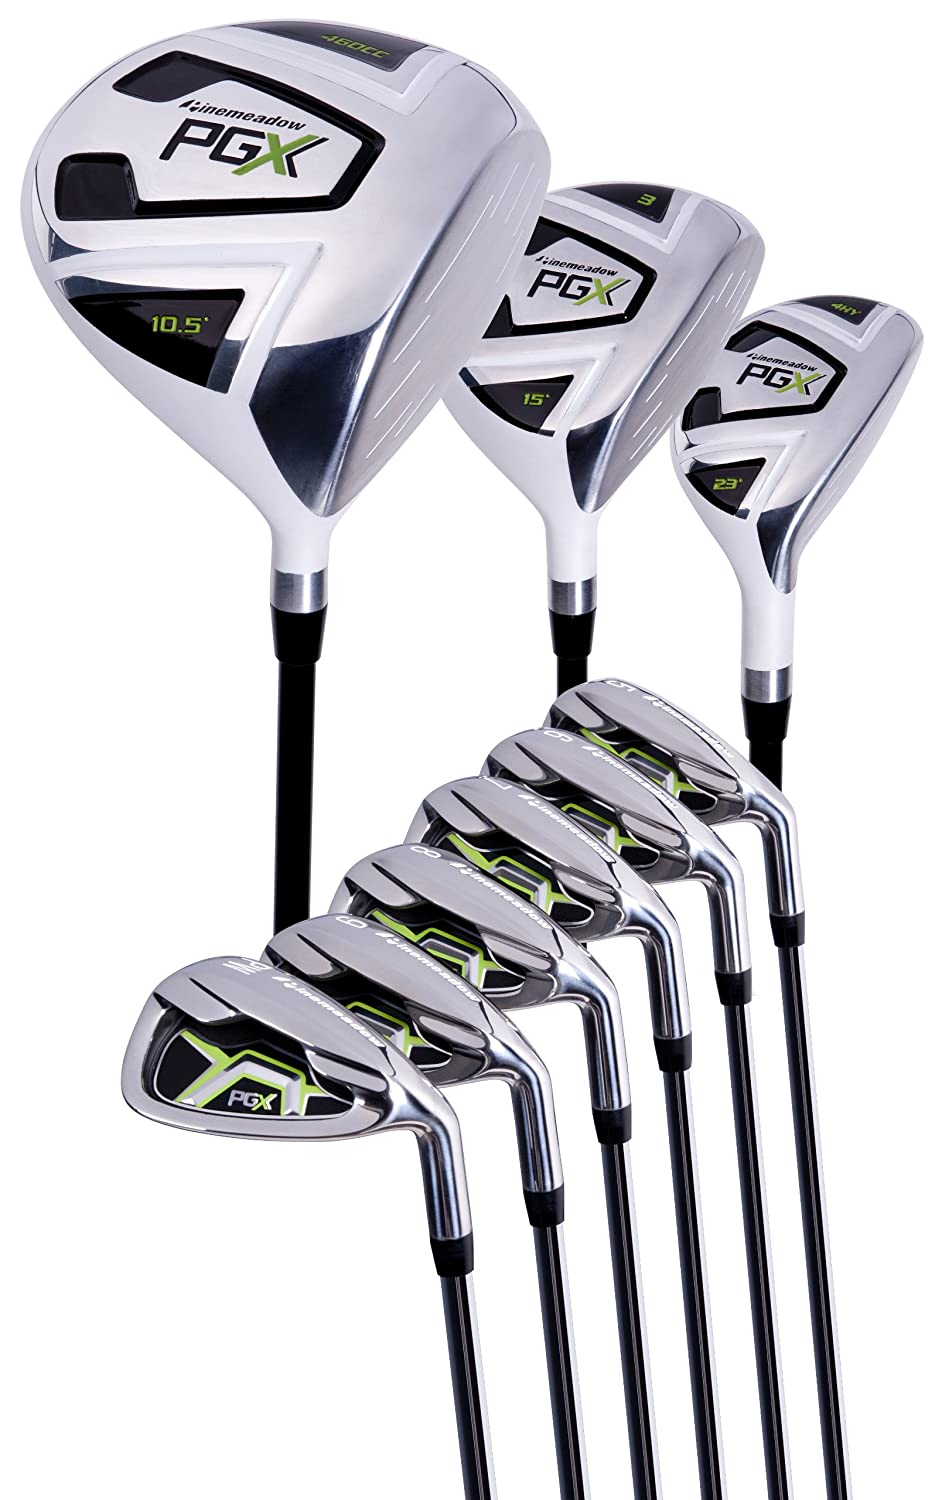 Pinemeadow Mens PGX Golf Set-Driver, 3 Wood, Hybrid, 5-PW ...